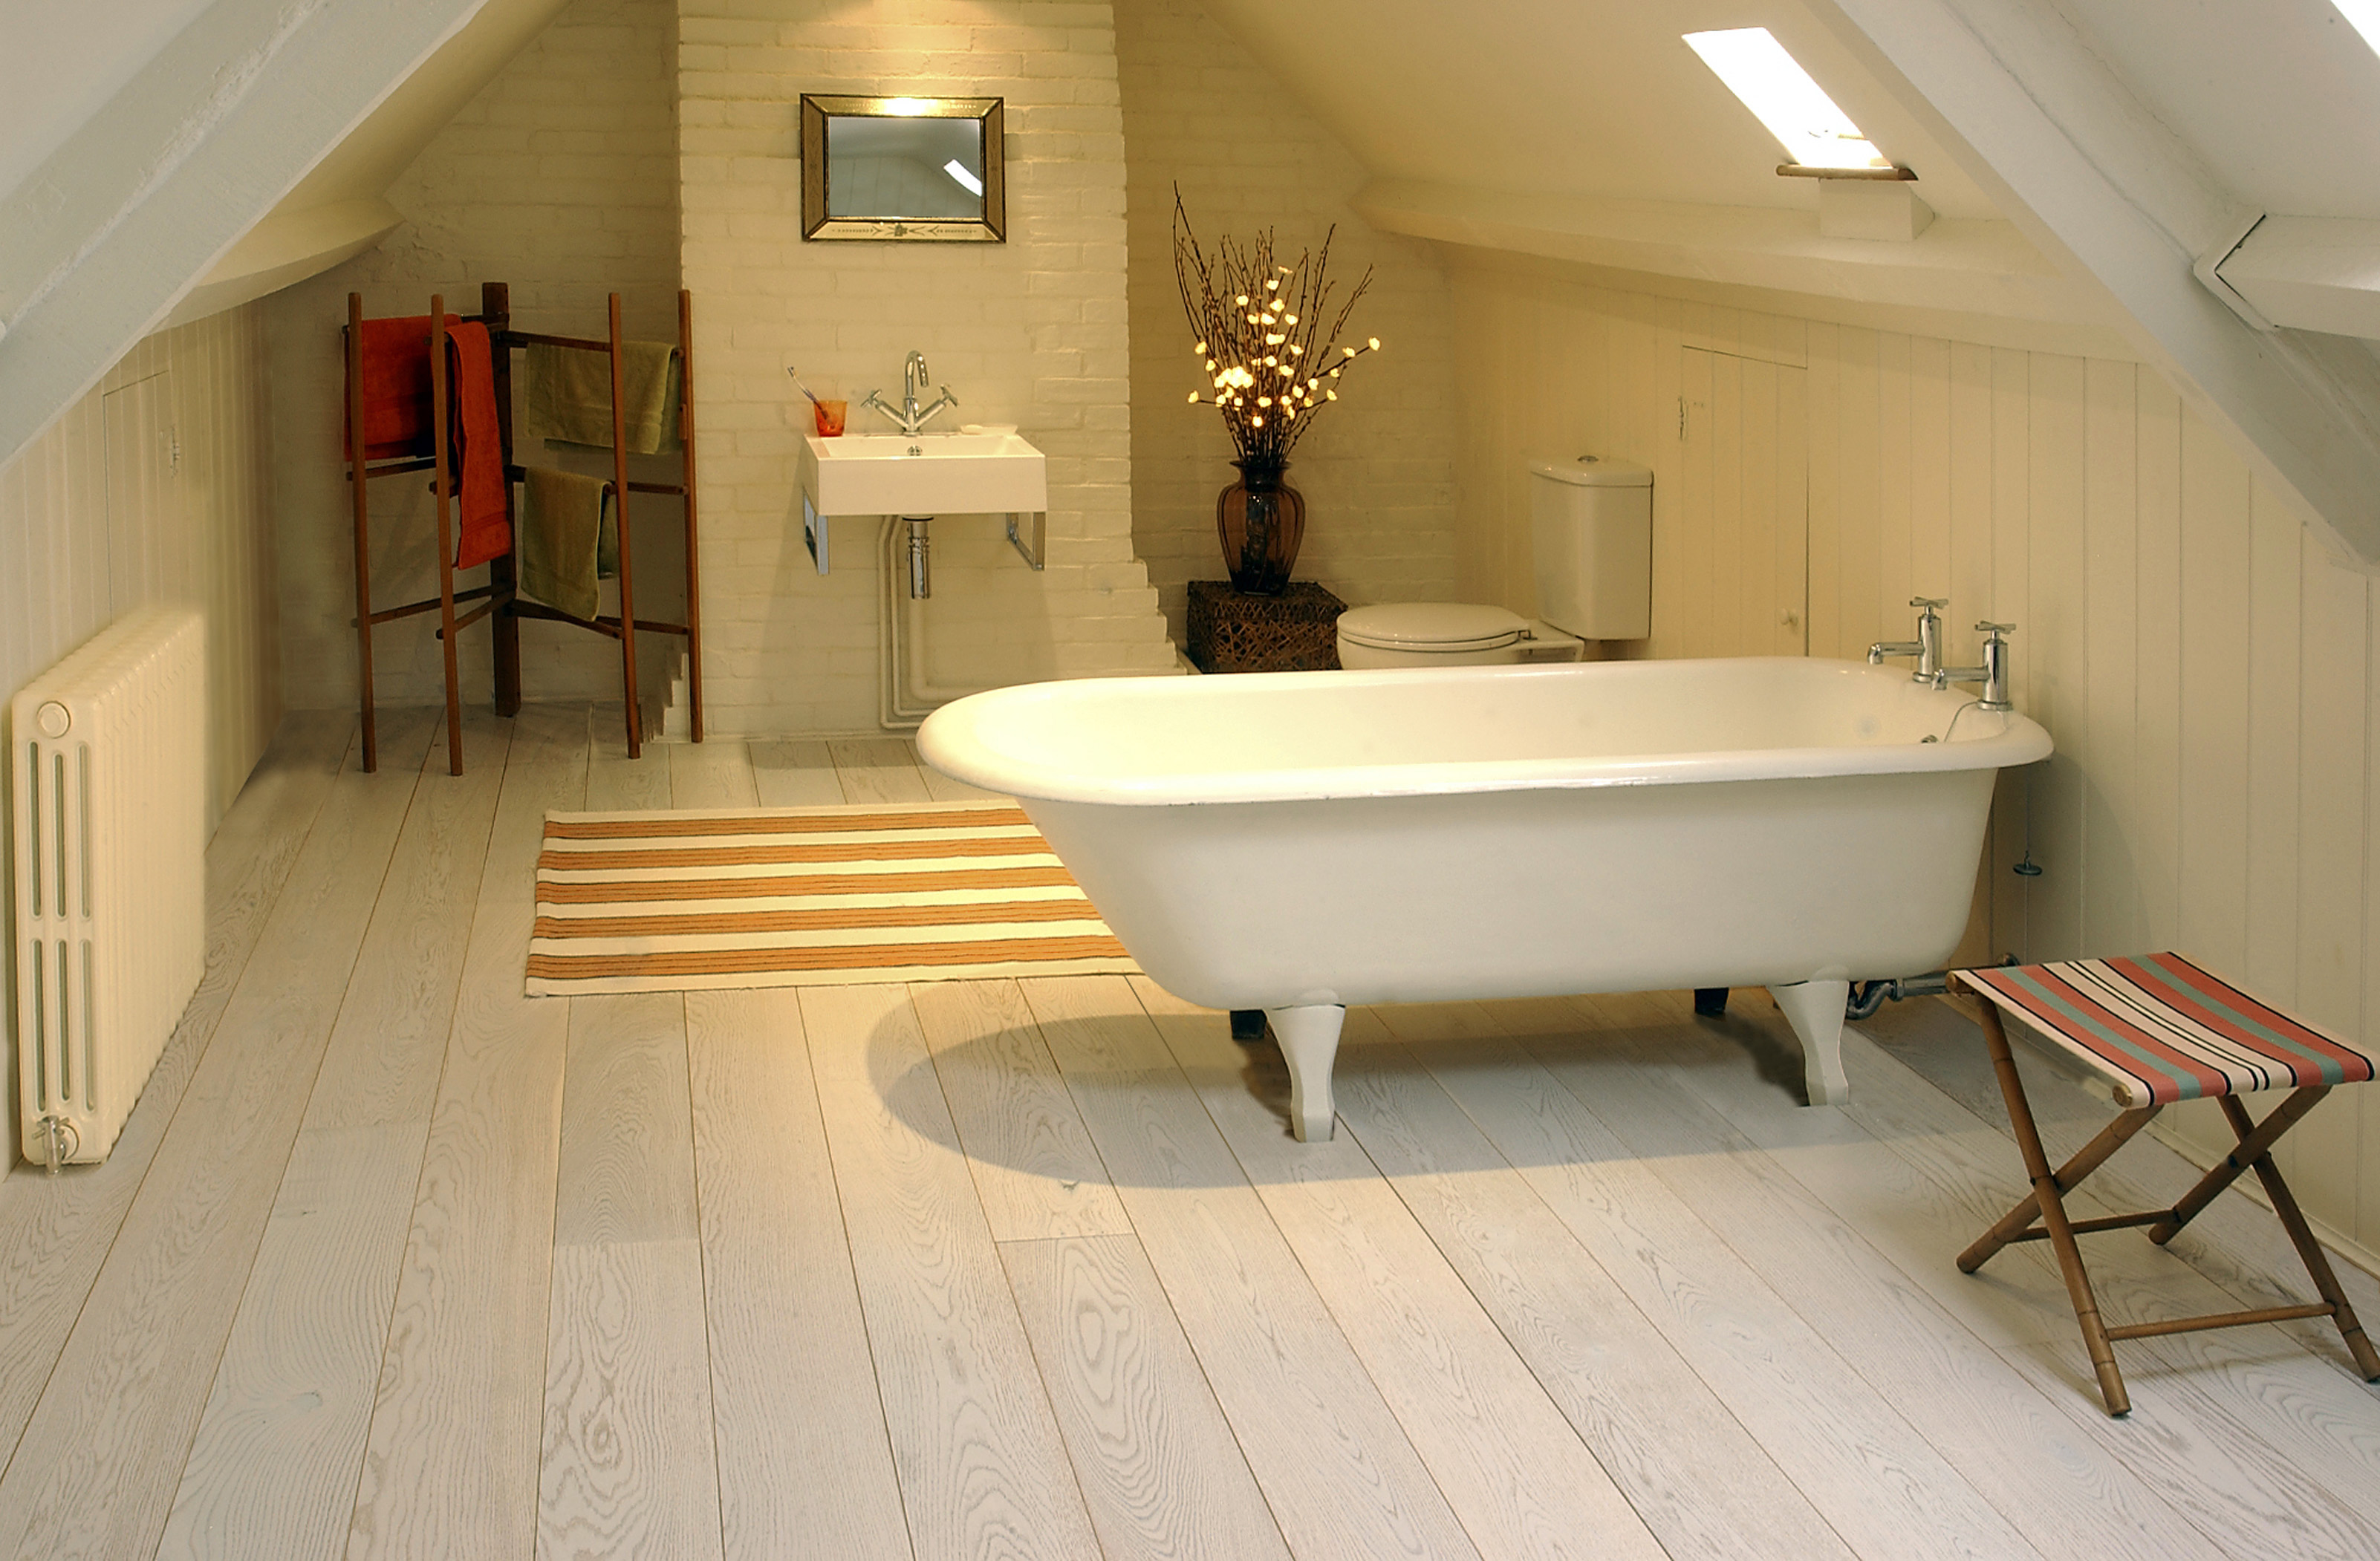 best floors for bathrooms wood floors in bathrooms - Bathroom Flooring Ideas